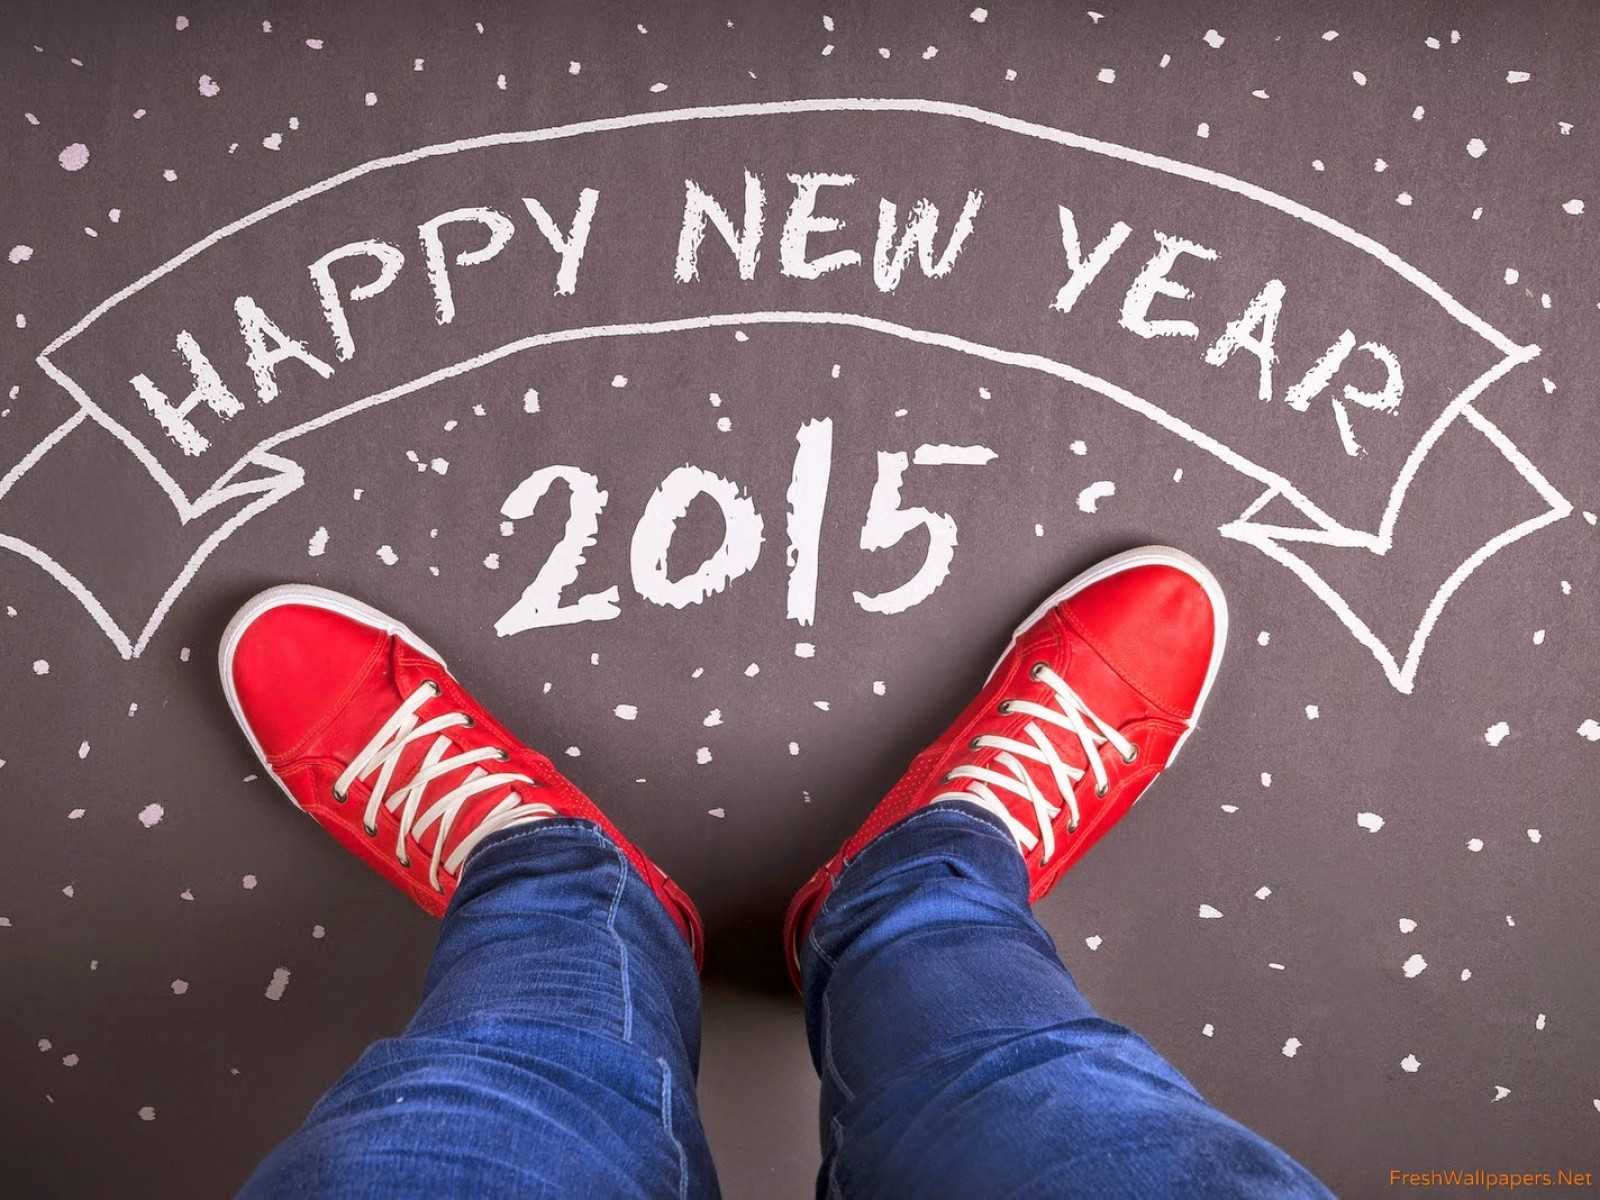 Happy New Year 2015 wallpapers Freshwallpapers 1600x1200